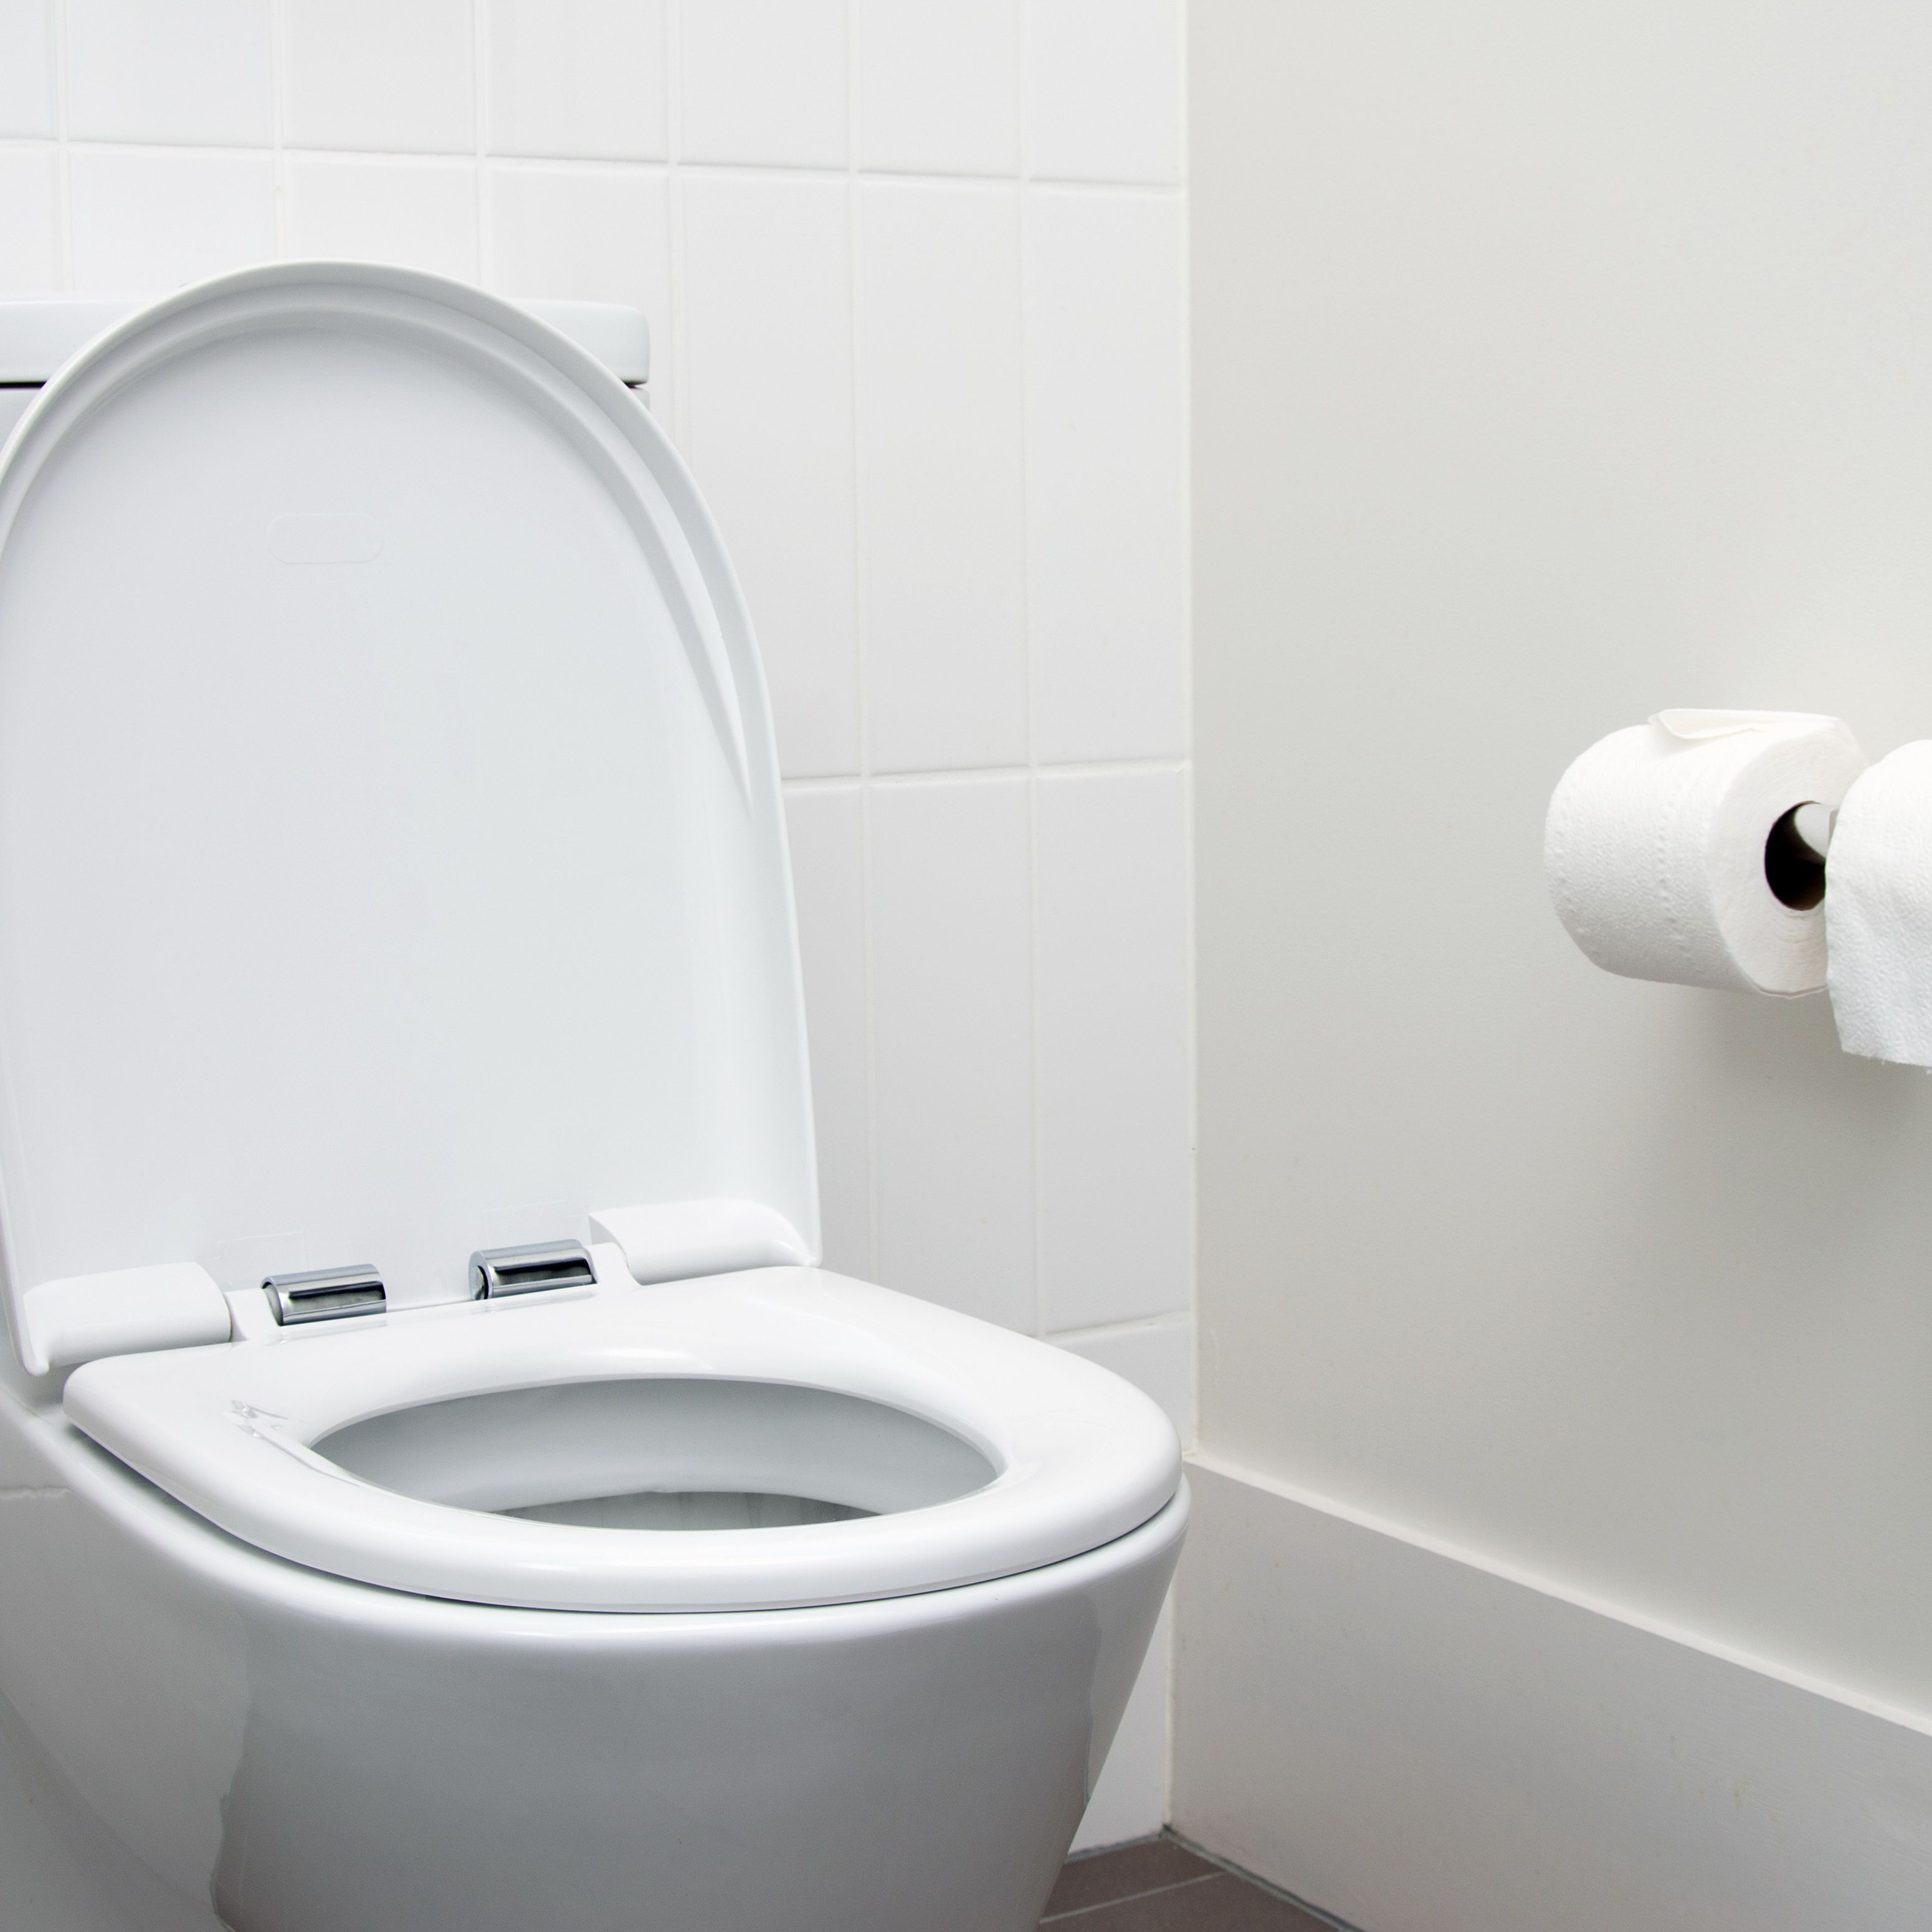 What You Should Consider Before Buying A Toilet